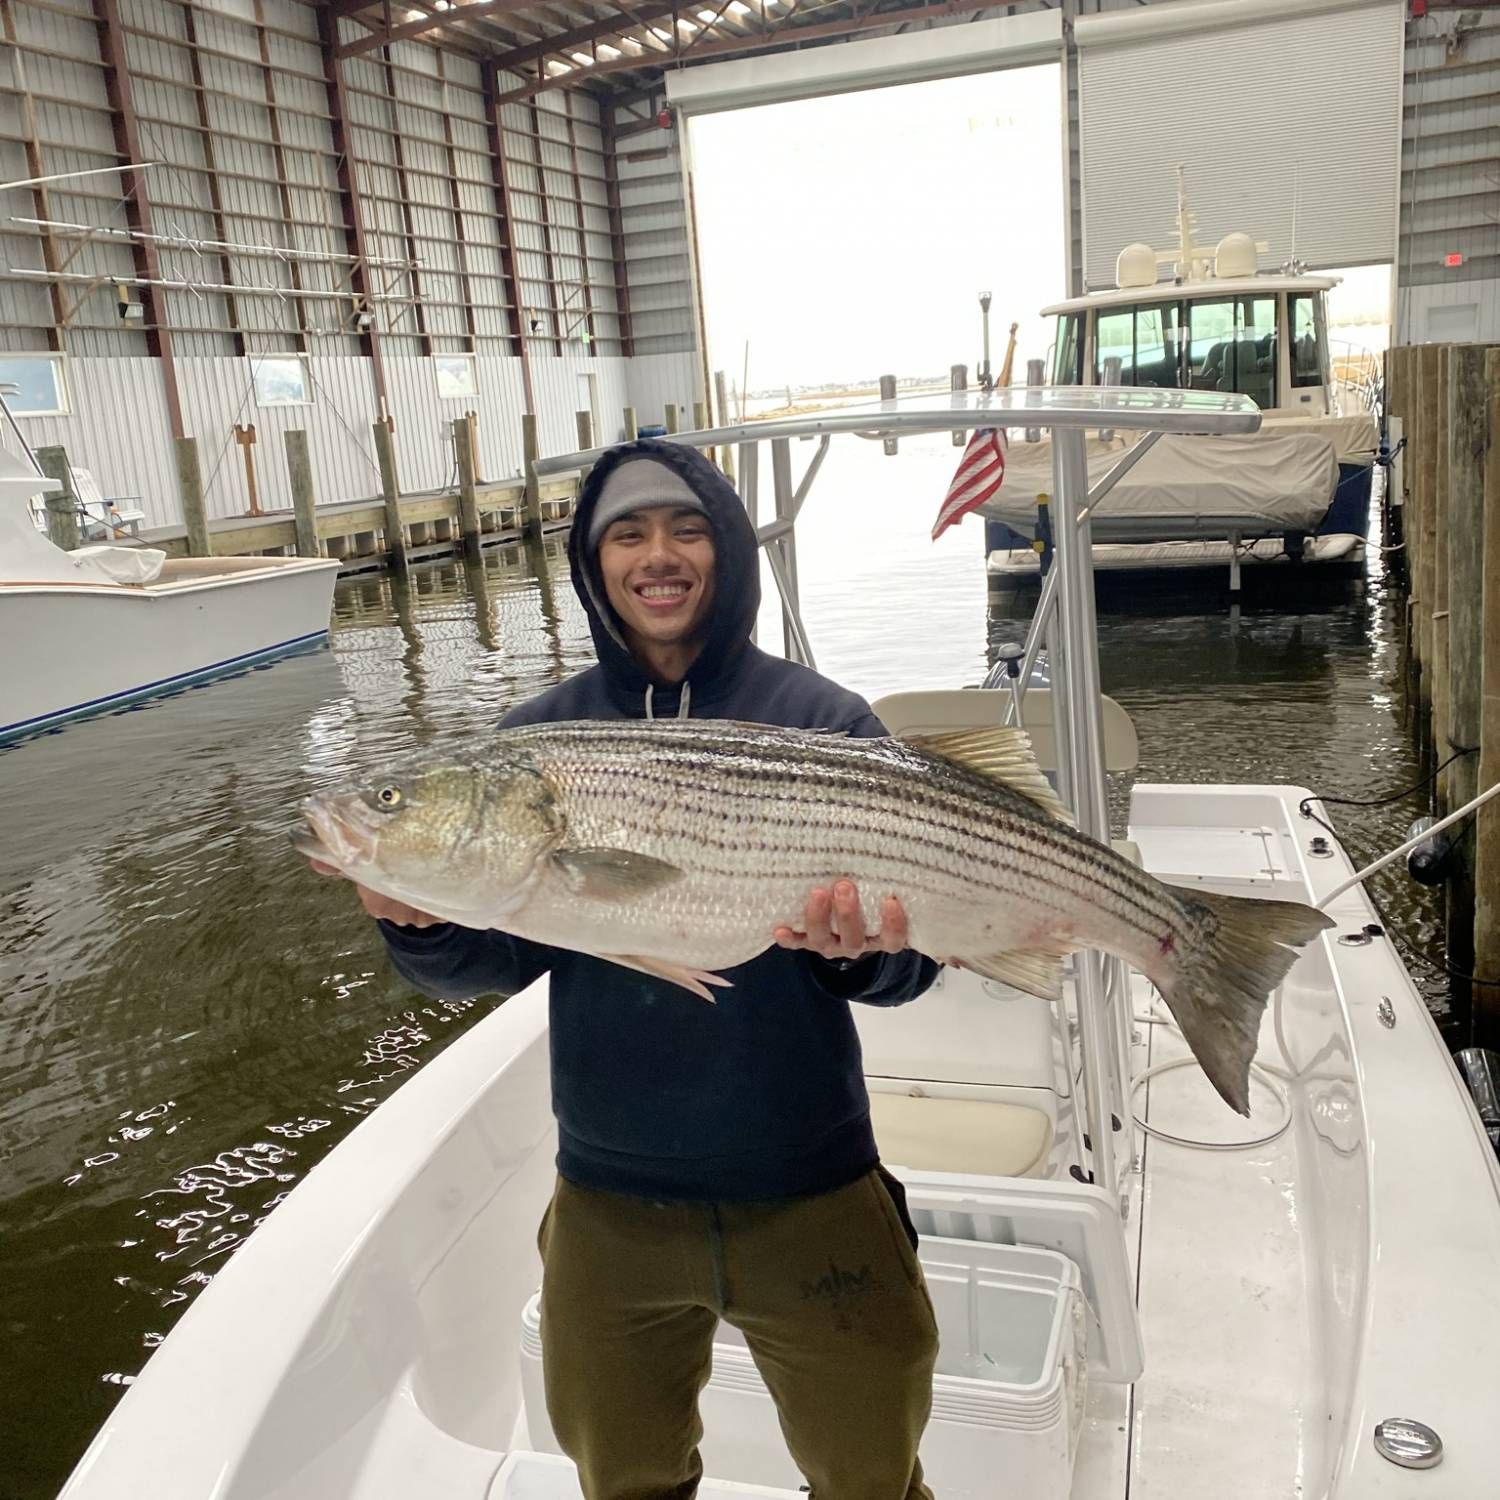 This was taken after a long day of striper fishing in mid-November of 2020. We were probably th...